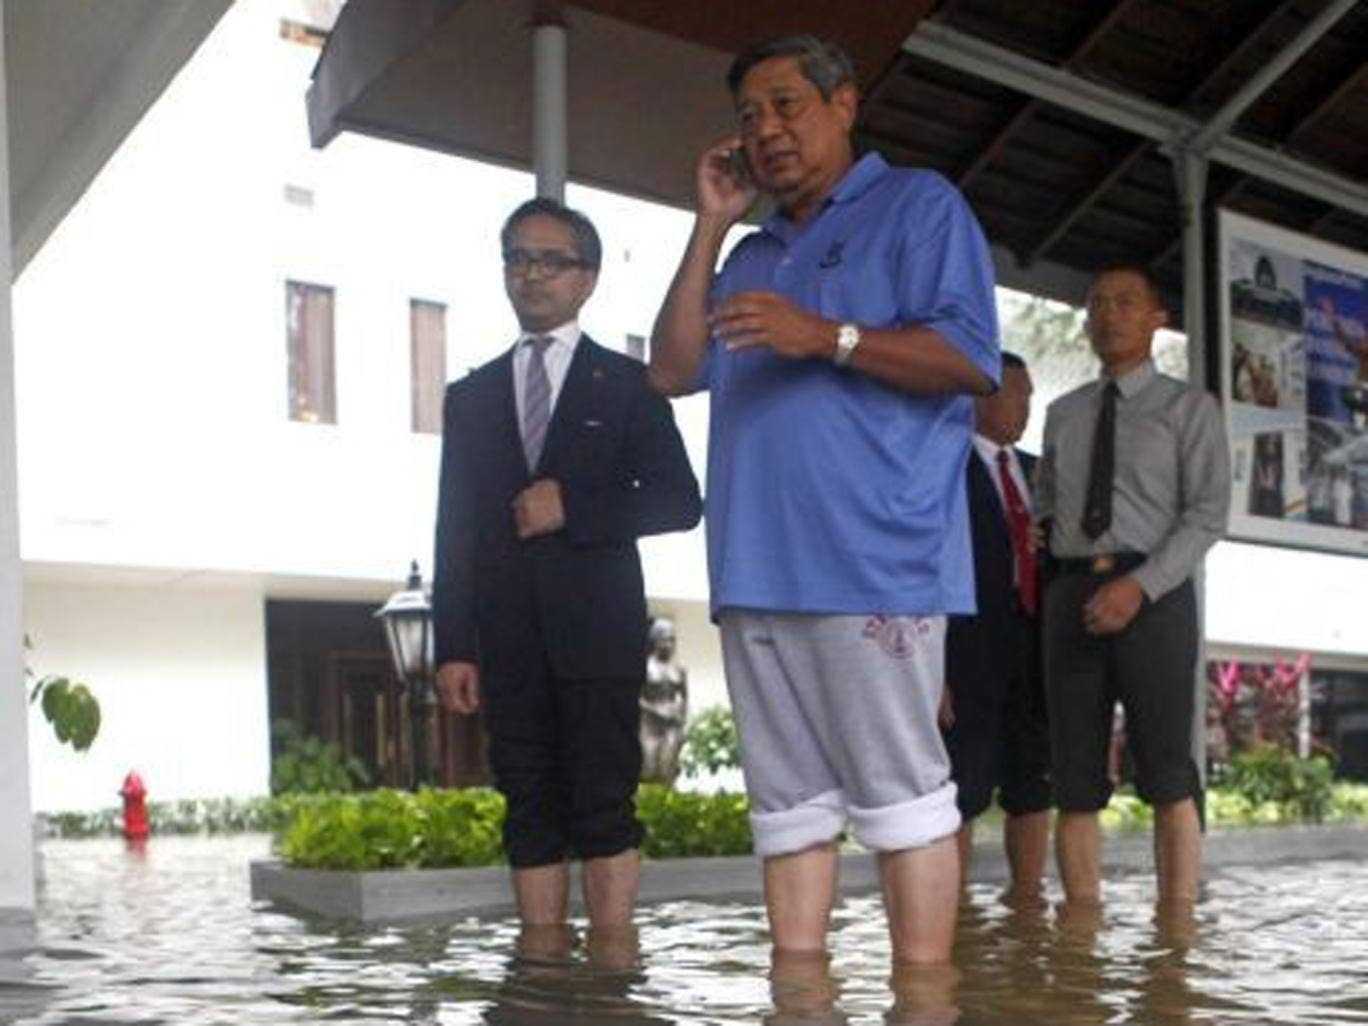 Indonesian president Susilo Bambang Yudhoyono, centre, inspects the flooded palace with foreign minister Marty Natalegawa, left, in Jakarta